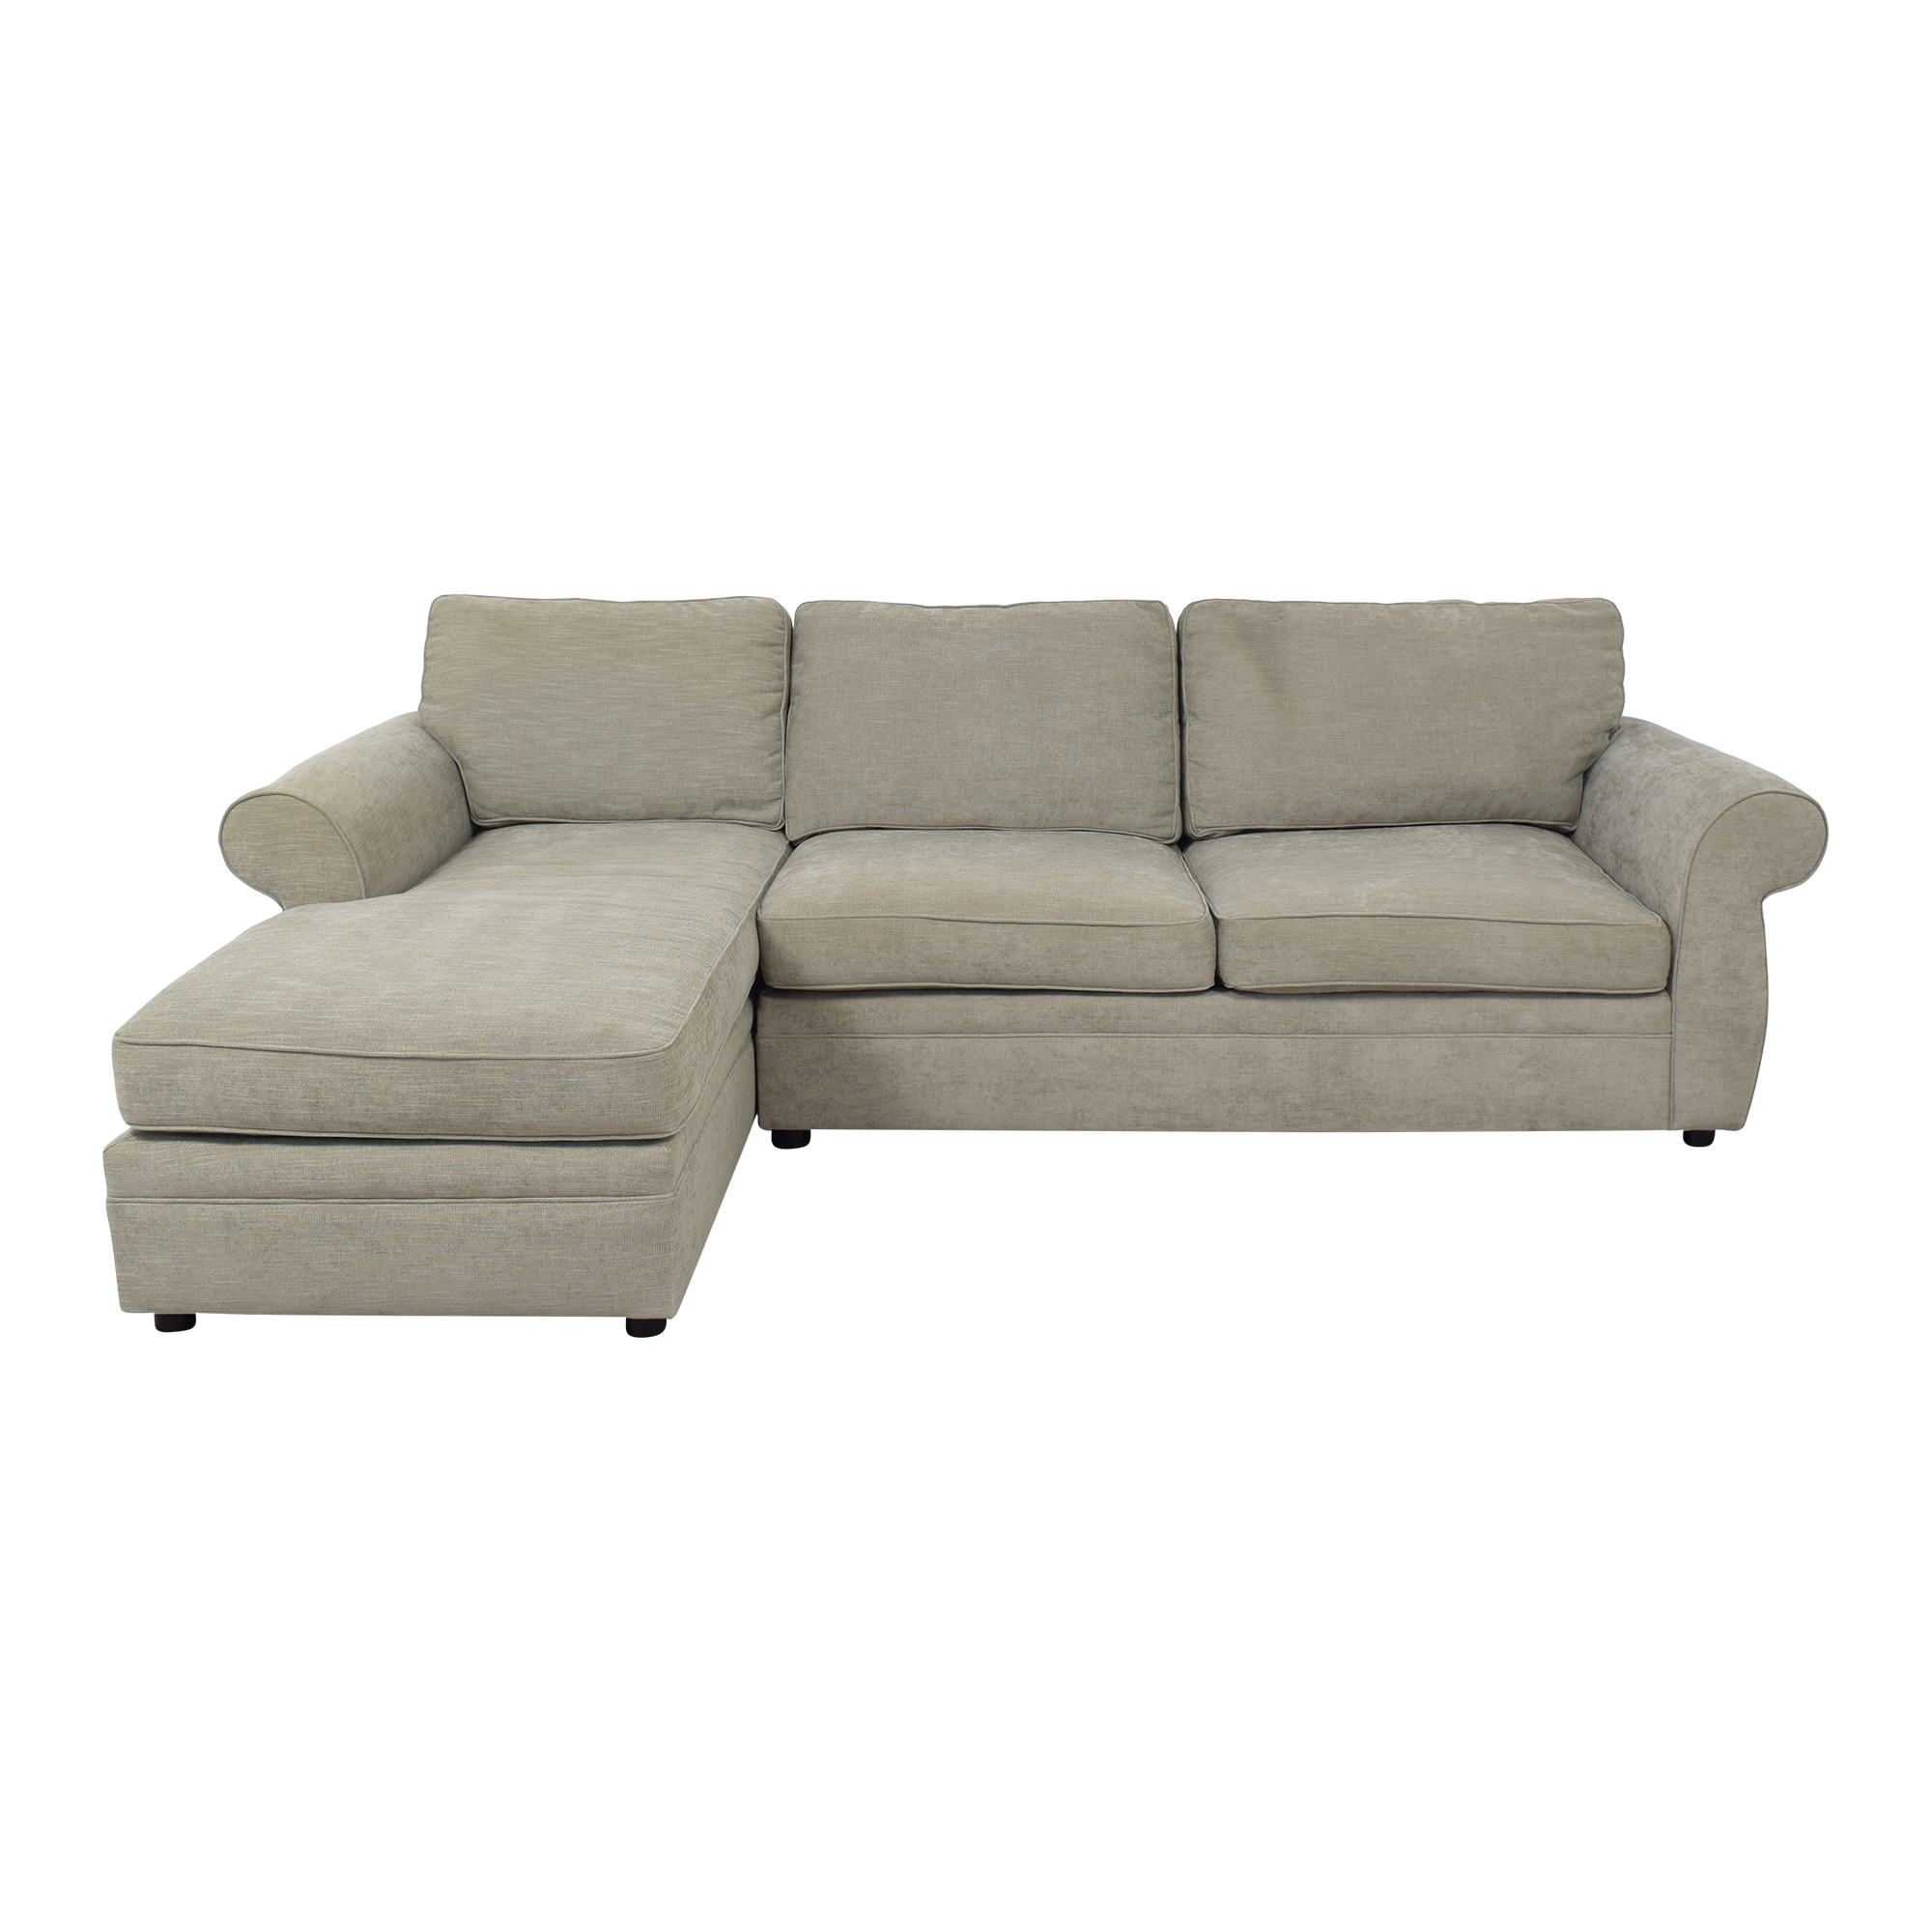 buy Pottery Barn Pearce Roll Arm Upholstered Sofa Chaise Sectional online